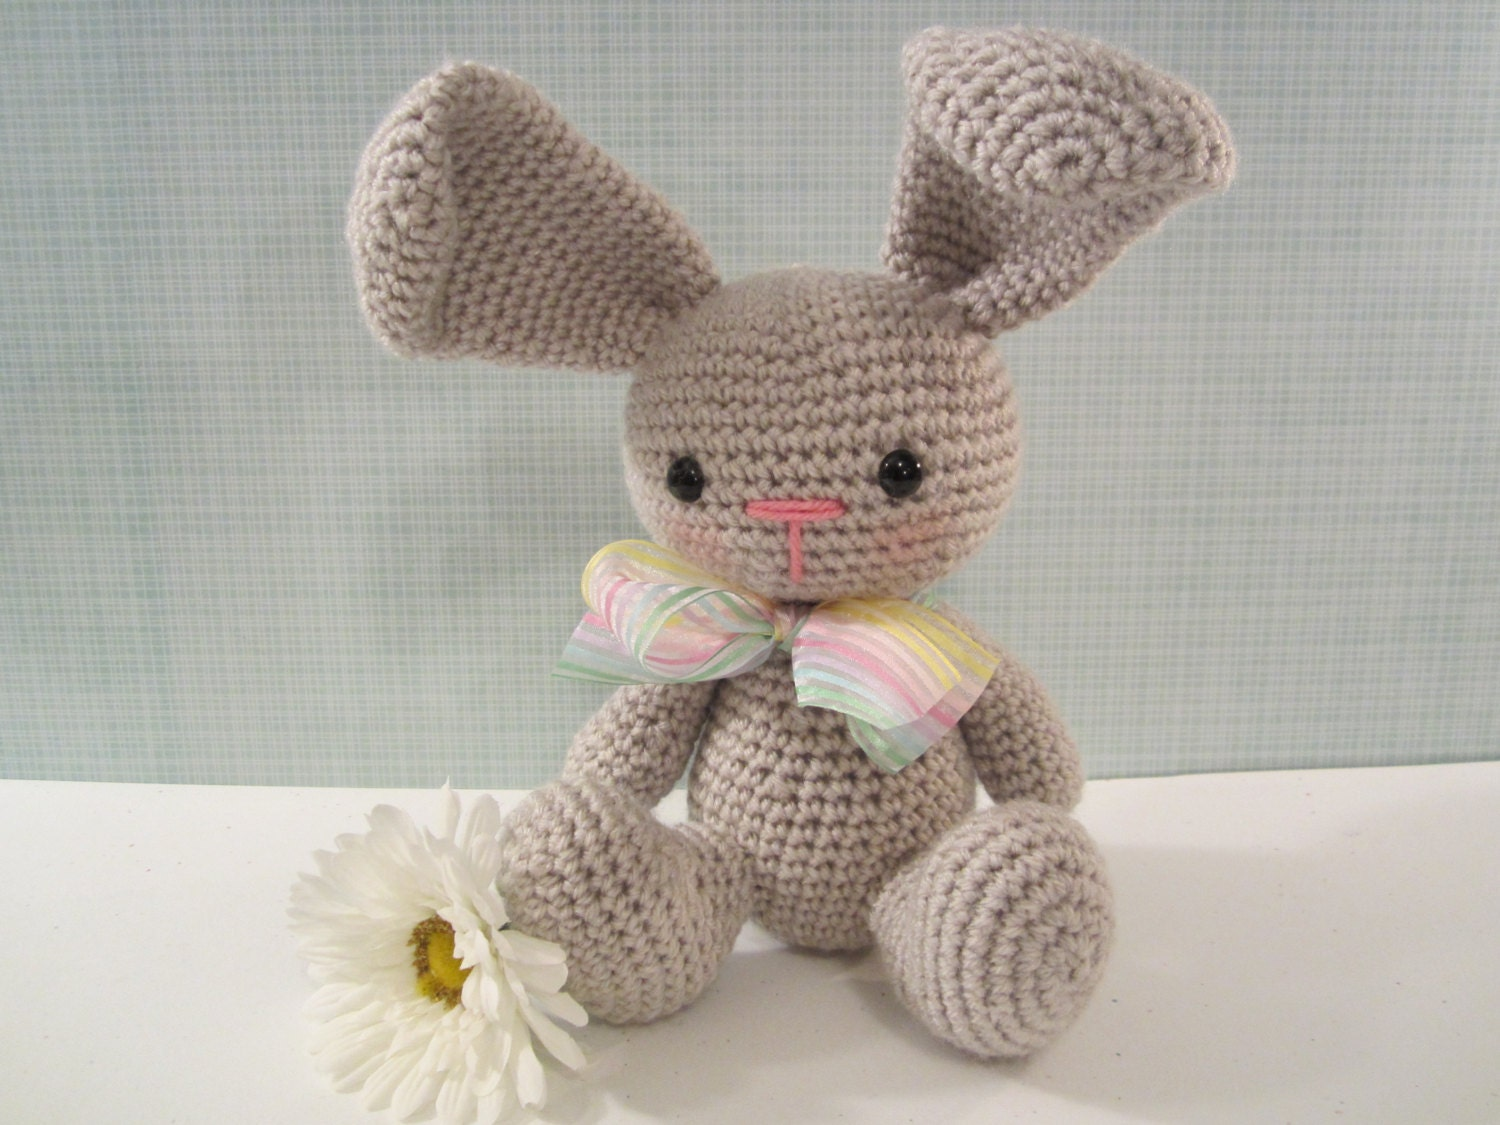 Crochet Patterns Rabbit : Unavailable Listing on Etsy